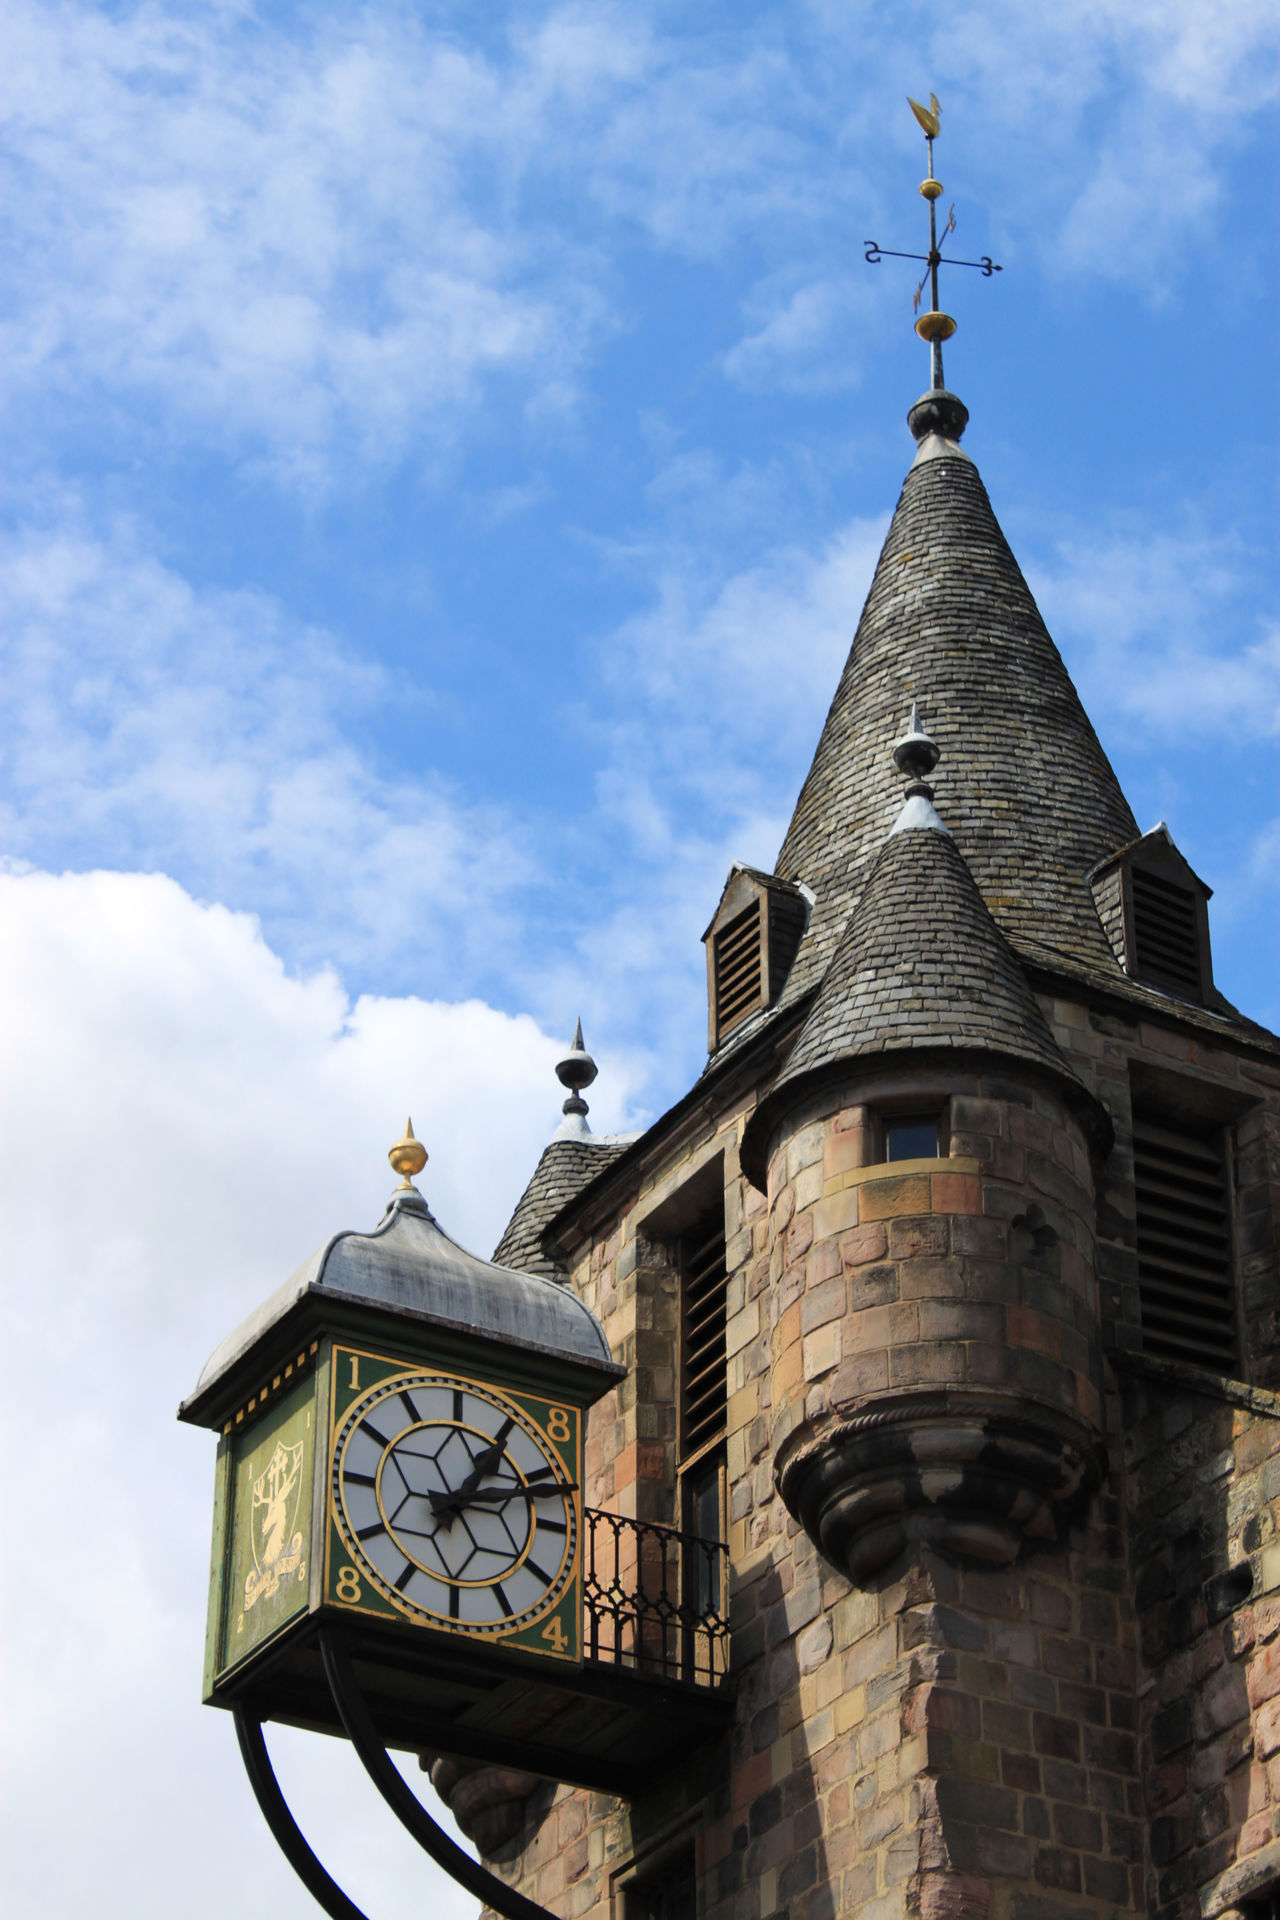 view on a clock tower in Edingburgh Architecture Carpe Diem Clock Clock Tower Cloud Cloud - Sky Edinburgh Geschichte Historic Historisch History Low Angle View Medieval Mittelalter Sky Time Tower Turm Turmuhr Uhr Zeit